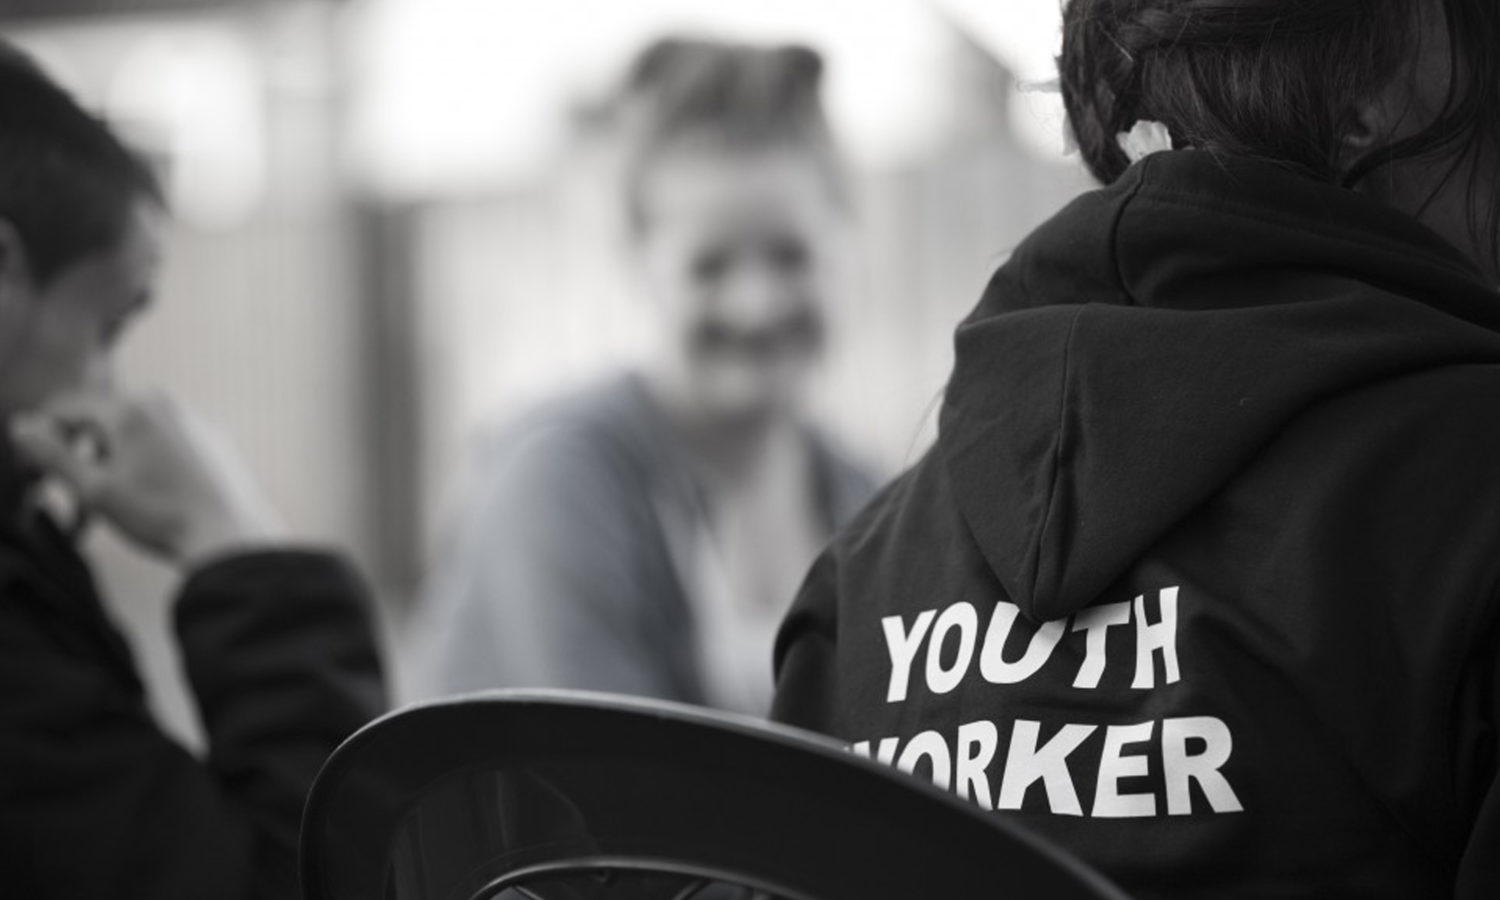 A picture of a youth worker working with young people